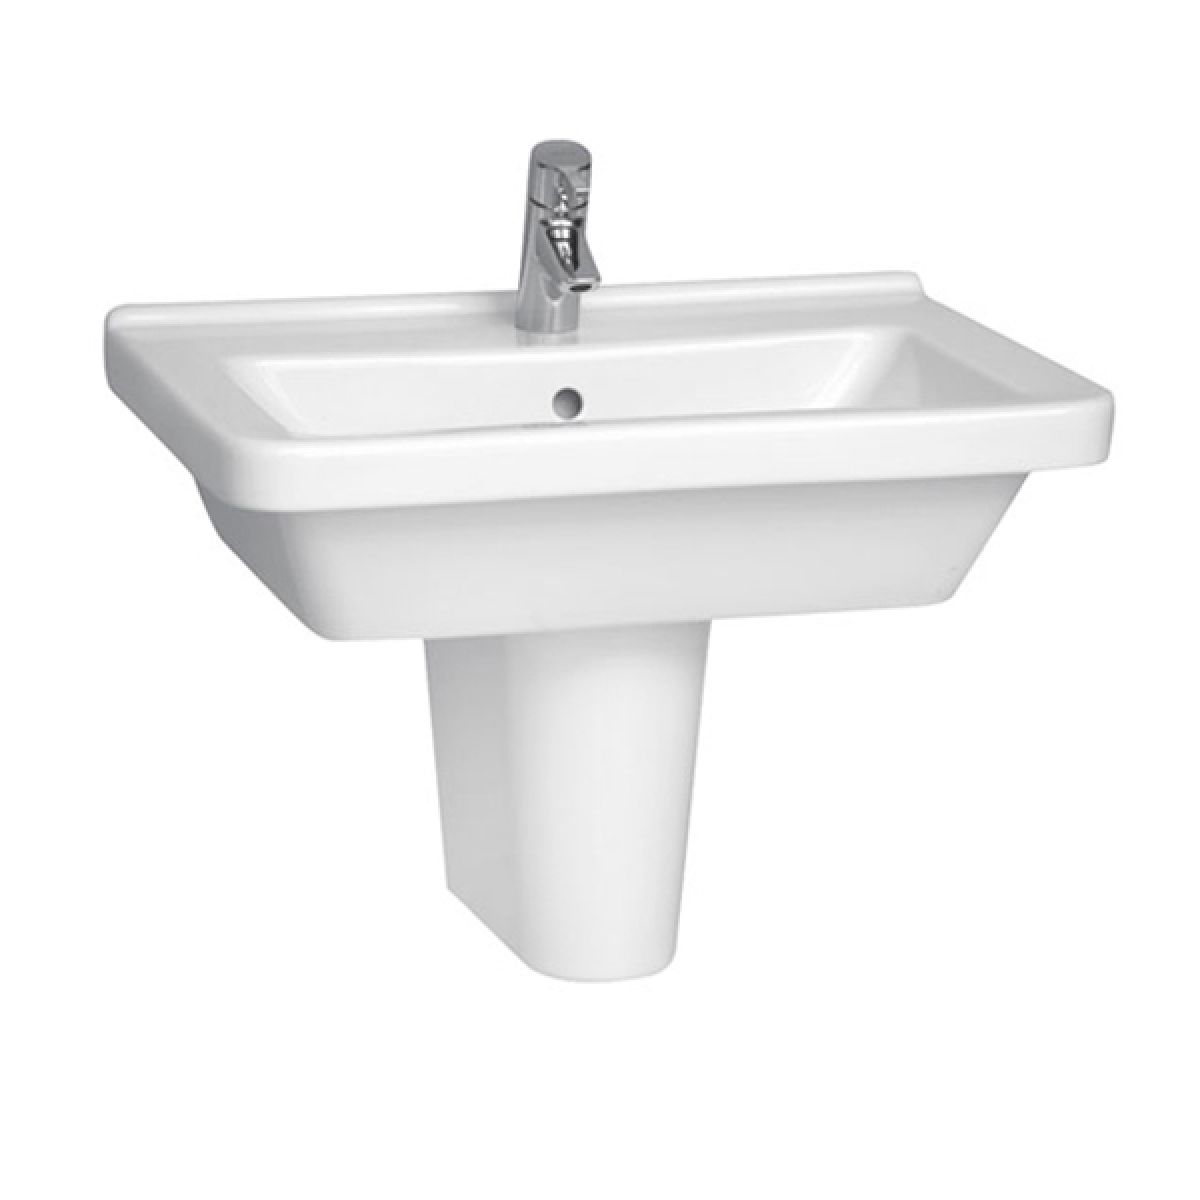 Vitra S50 1 Tap Hole Square Basin with Semi Pedestal 600mm